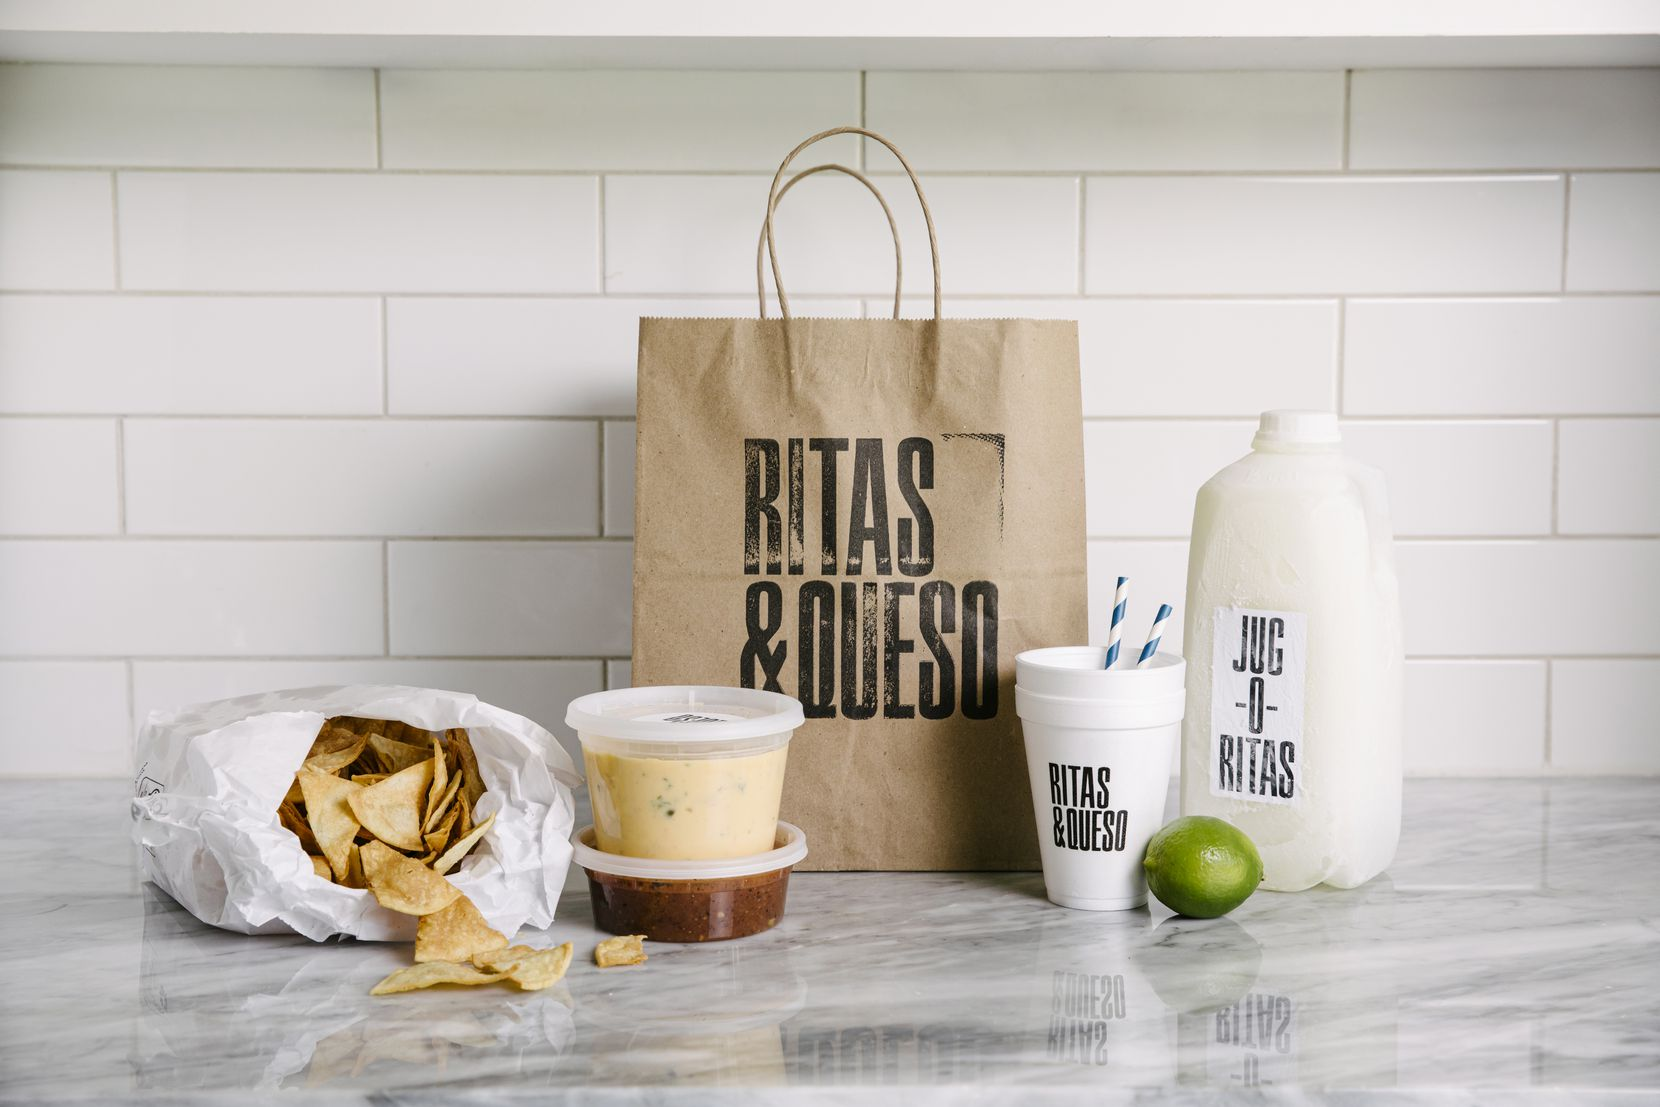 Ritas and Queso, which started as a pop-up, serves queso and margaritas to go.